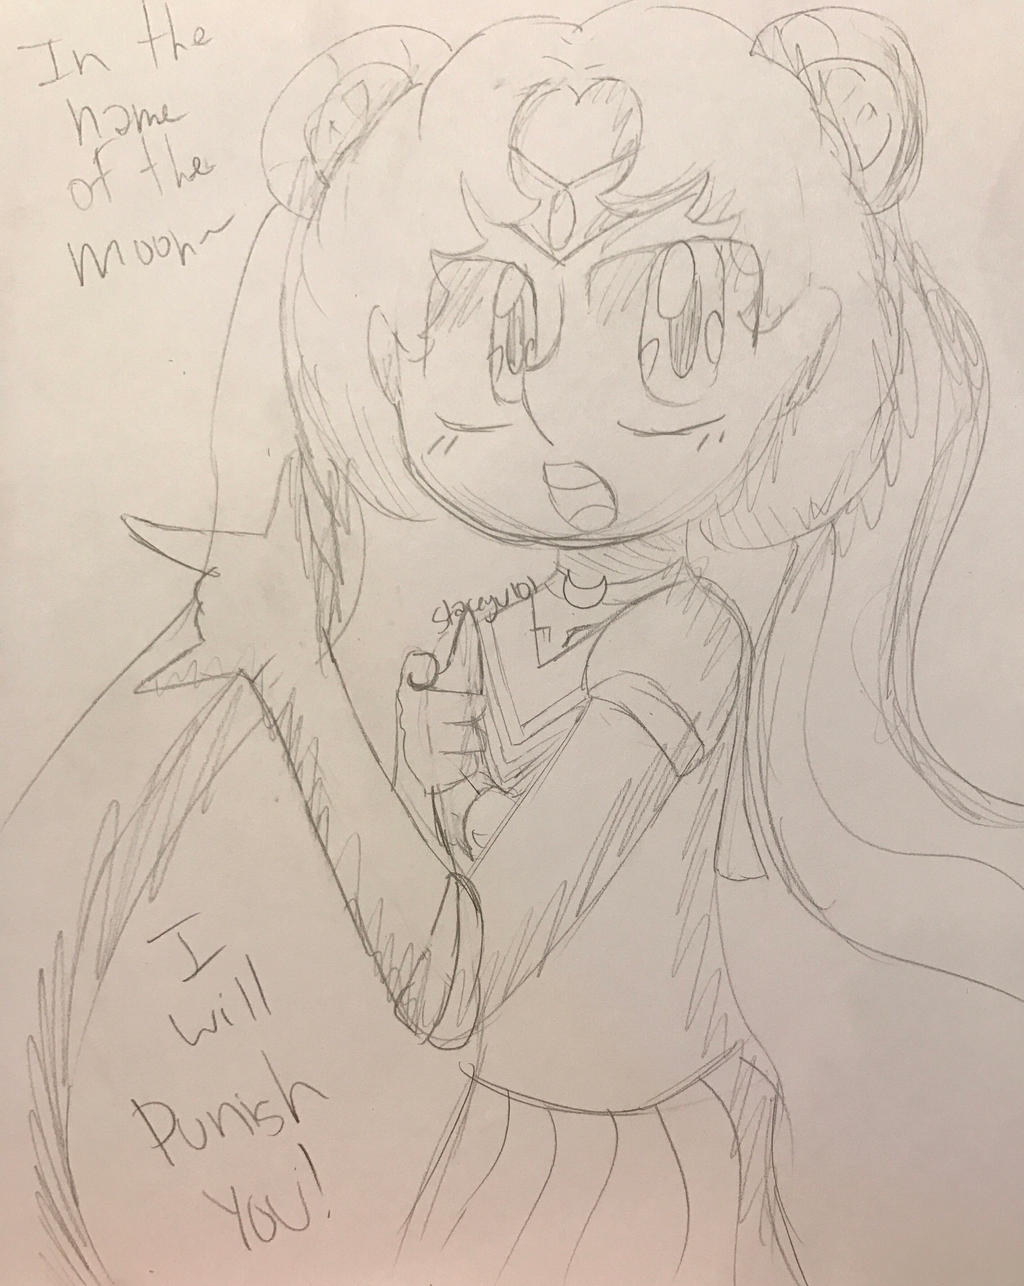 .:In the name of the moon~ I will punish you!:. by SleepyStaceyArt